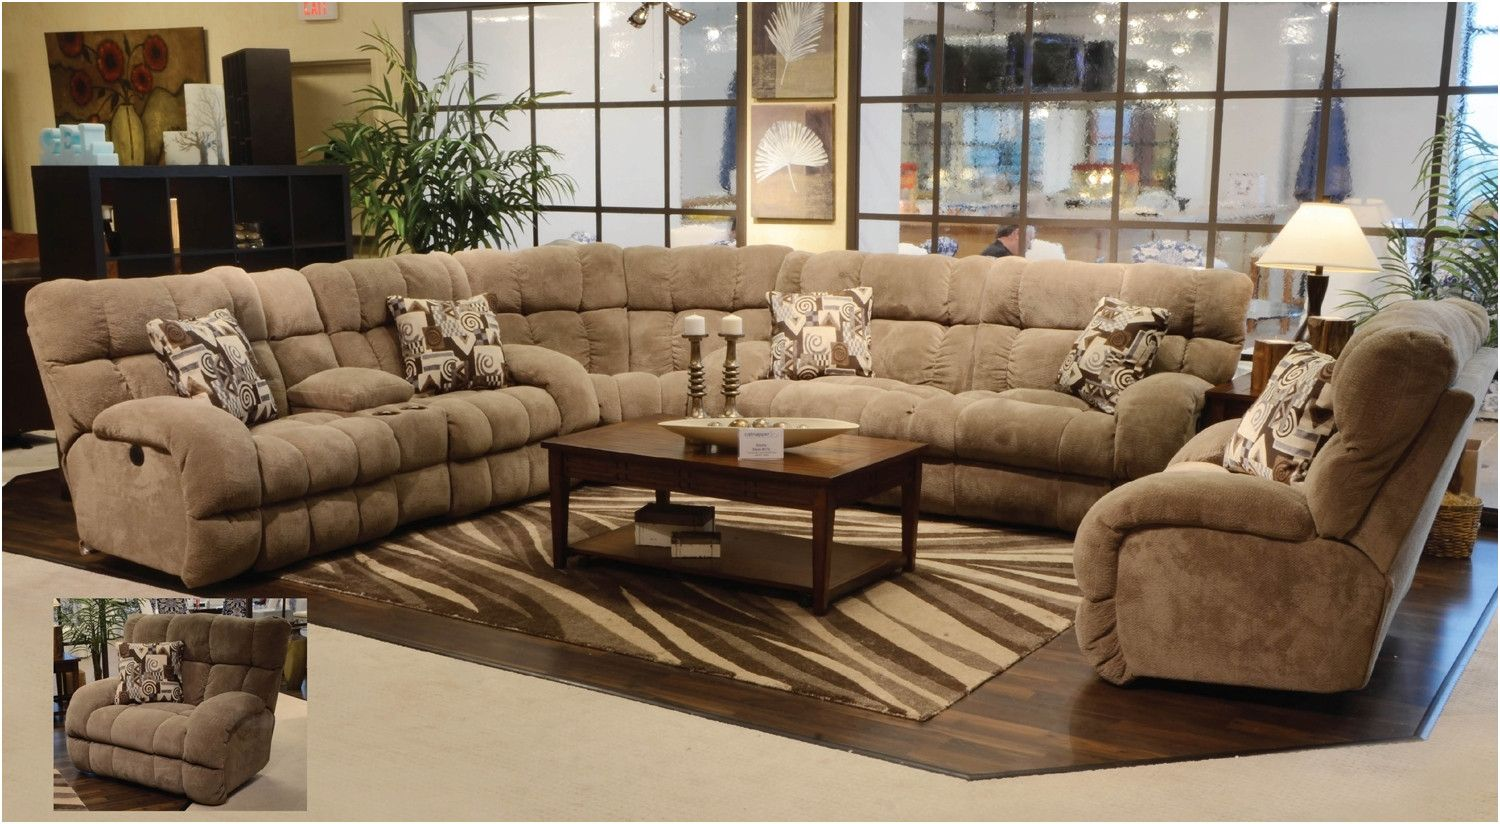 12 Photo Of Extra Large Sectional Sofas Di 2020